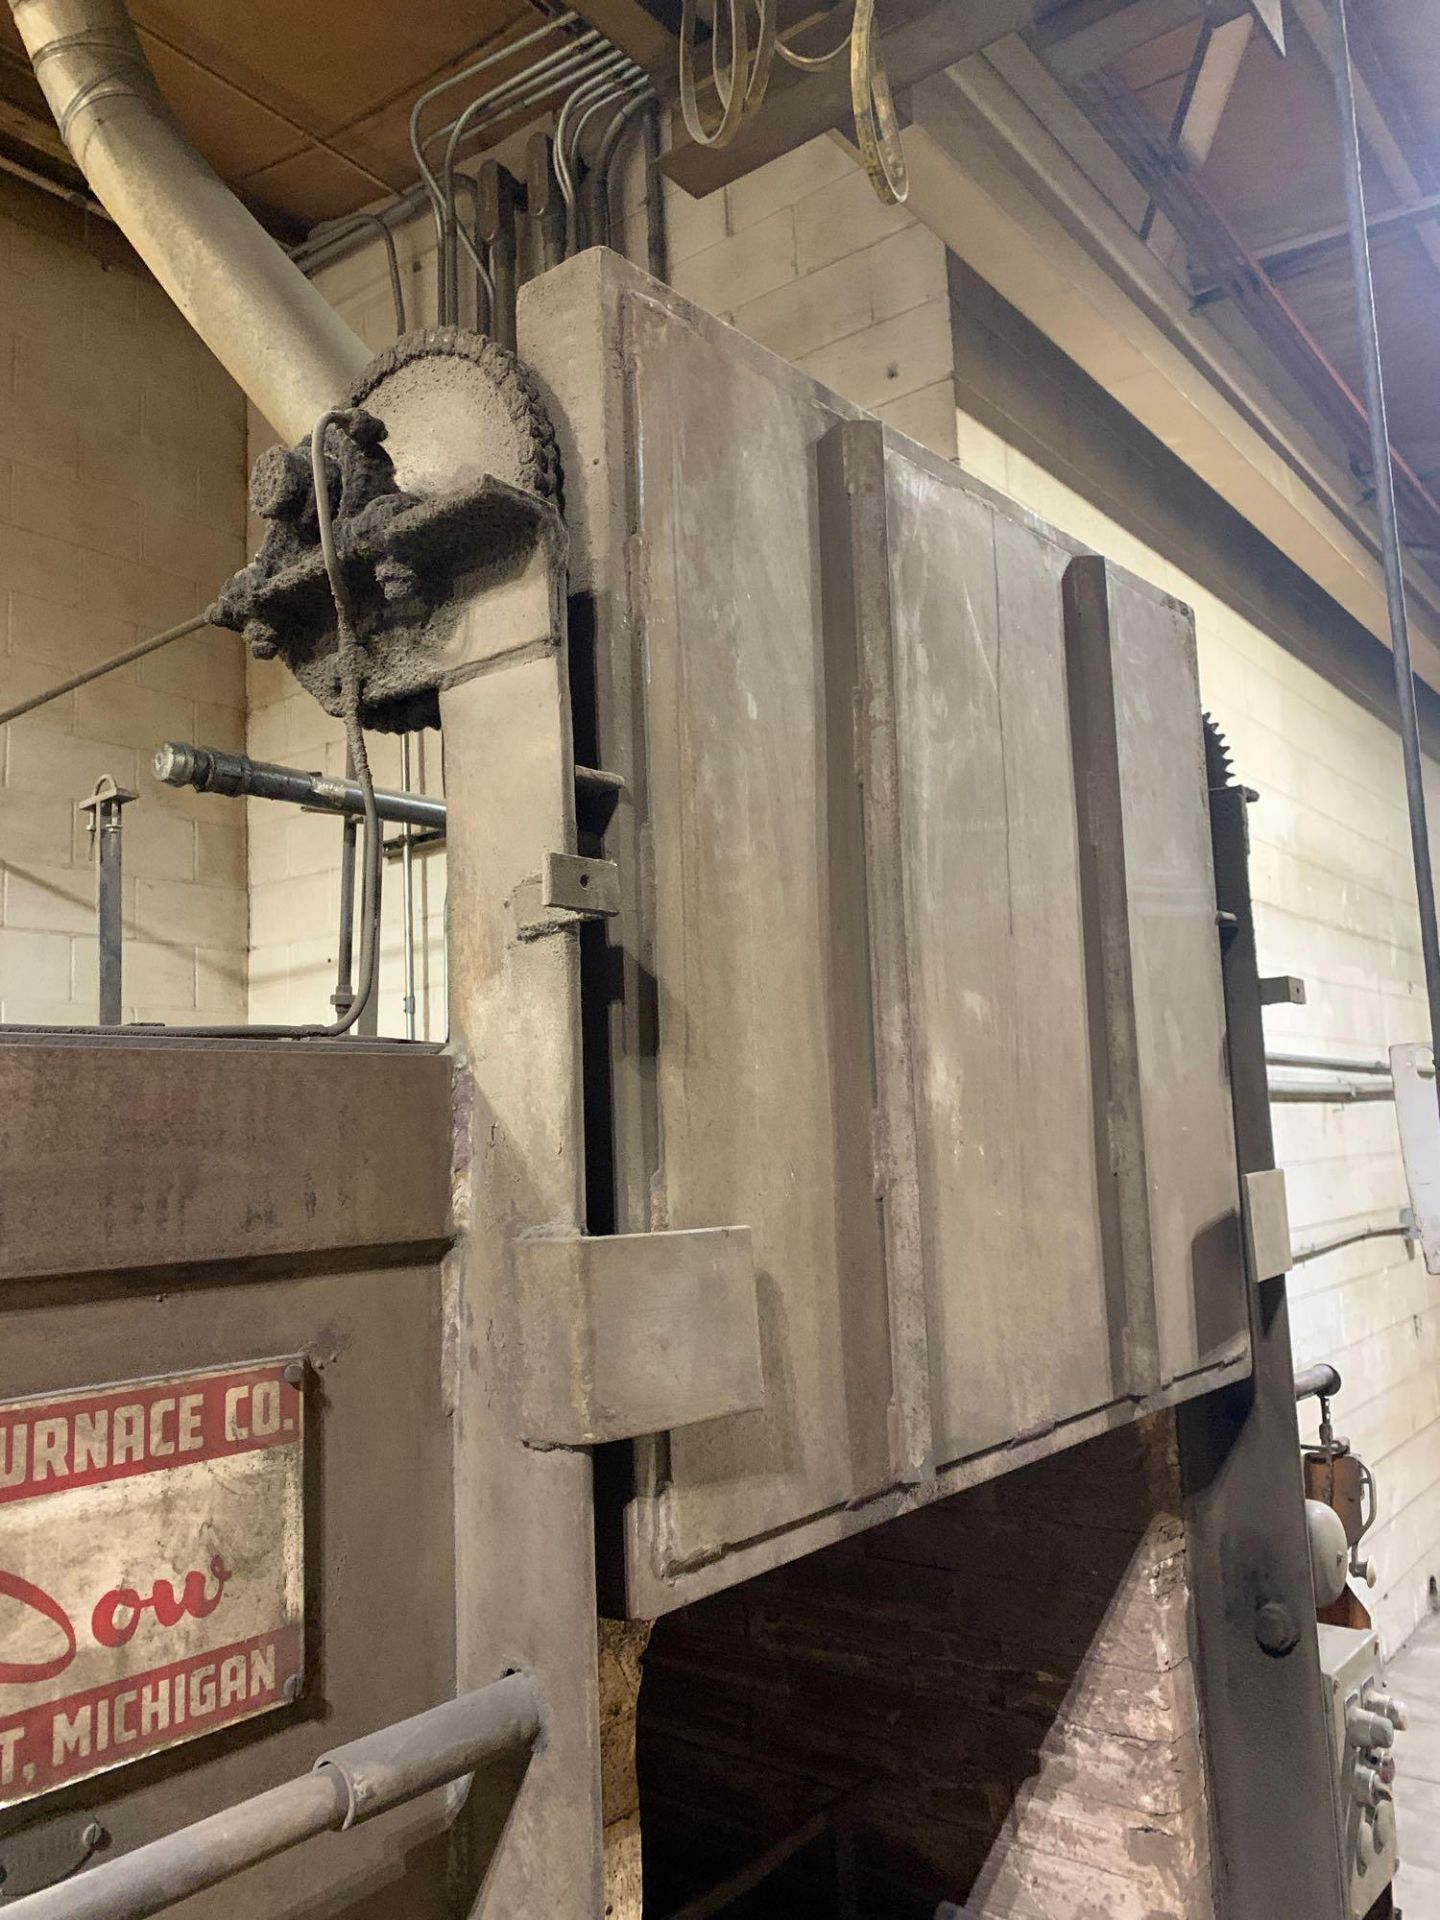 Dow Furnace Co. Electric Draw Furnace Seller States It Will Do At Least 1200 Degrees Model Bxe-24362 - Image 14 of 21